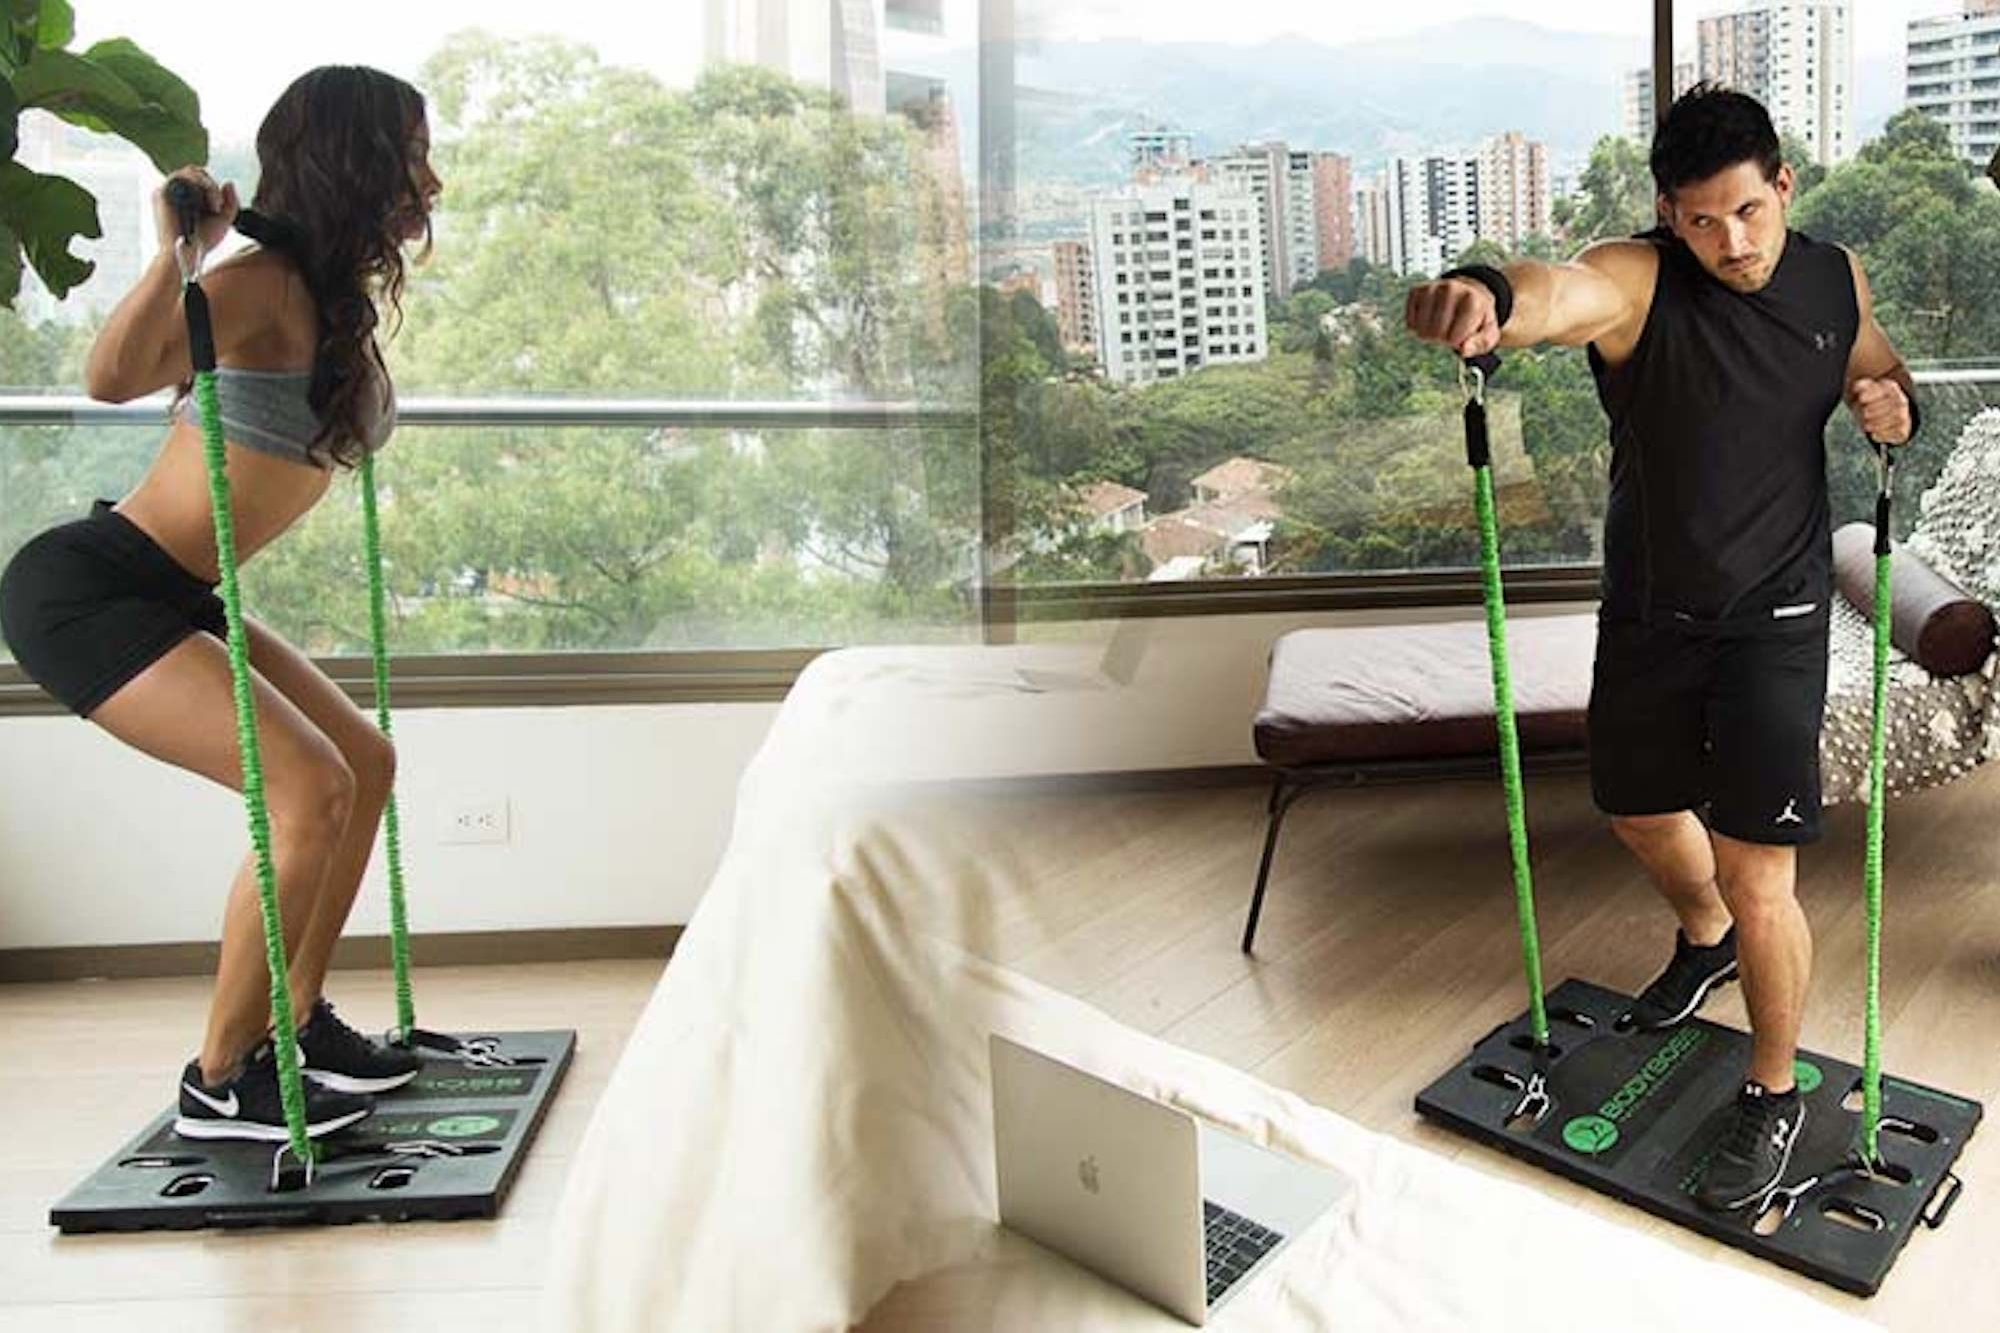 Too Busy to Exercise? Save the Excuses with This Portable Gym.